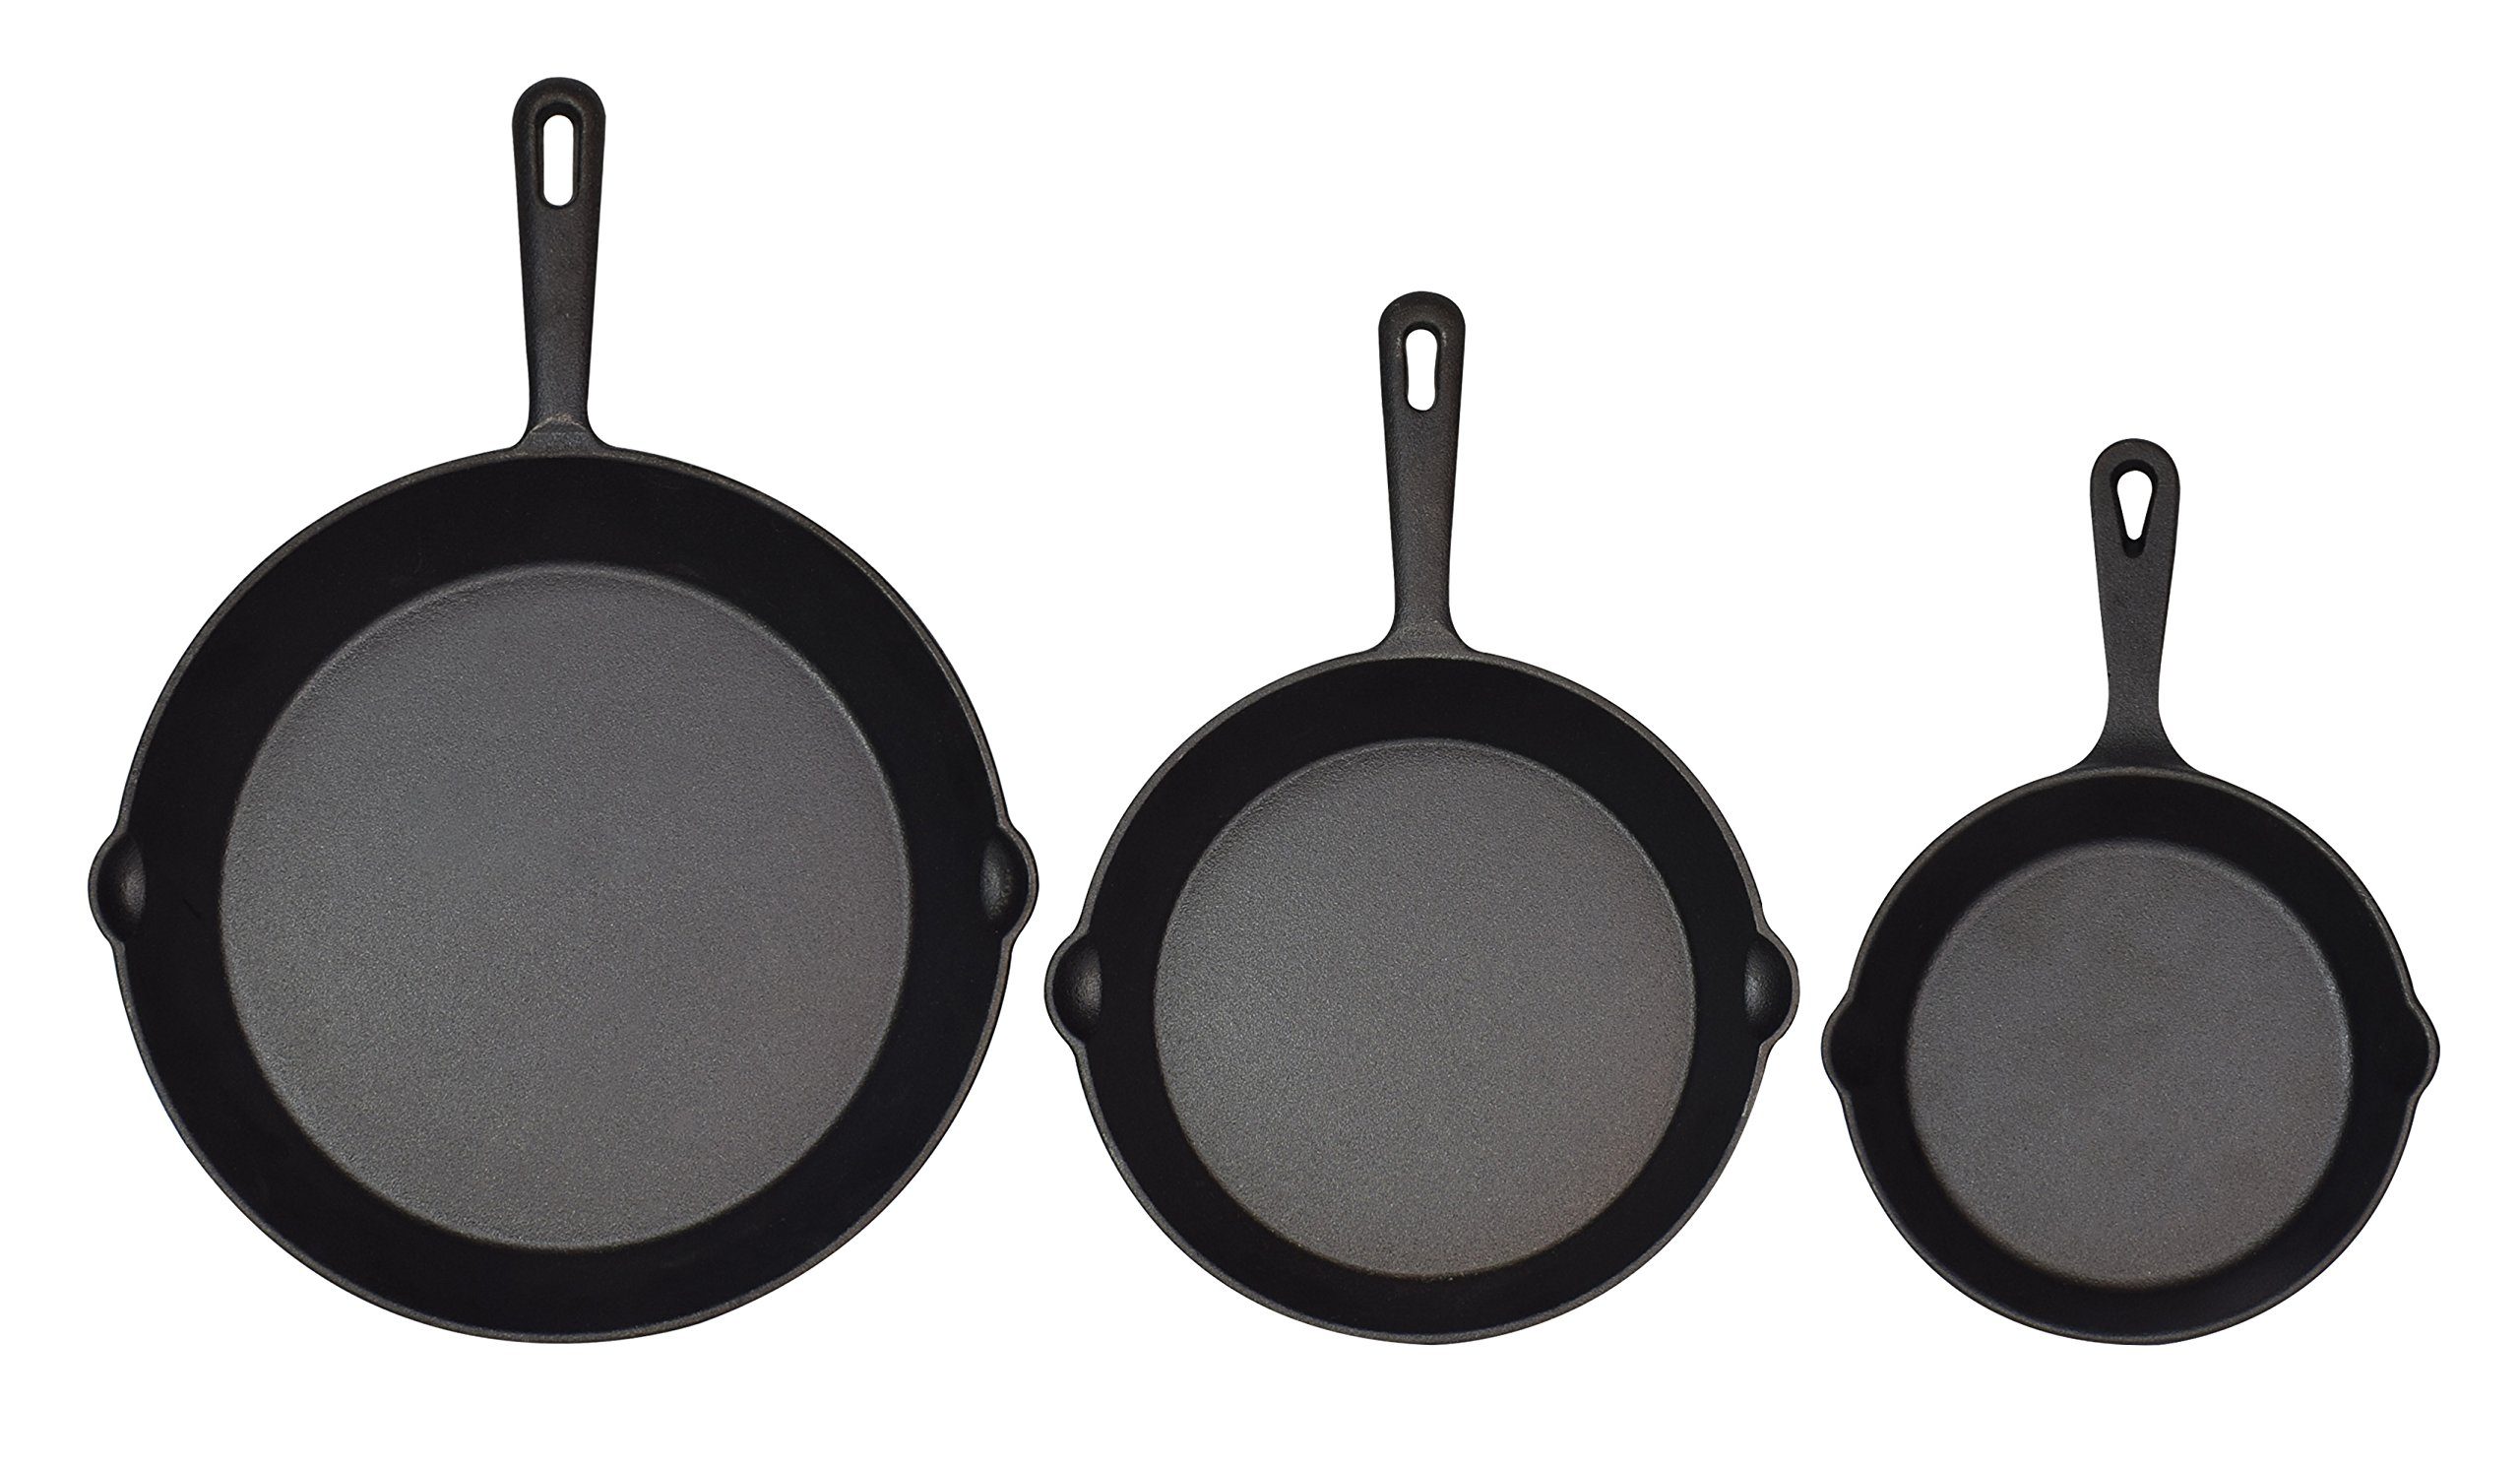 Jim Beam Set of 3 Pre Seasoned Cast Iron Skillets with Even Heat Distribution and Heat Retention - 6'' 8'' 10'' by Jim Beam